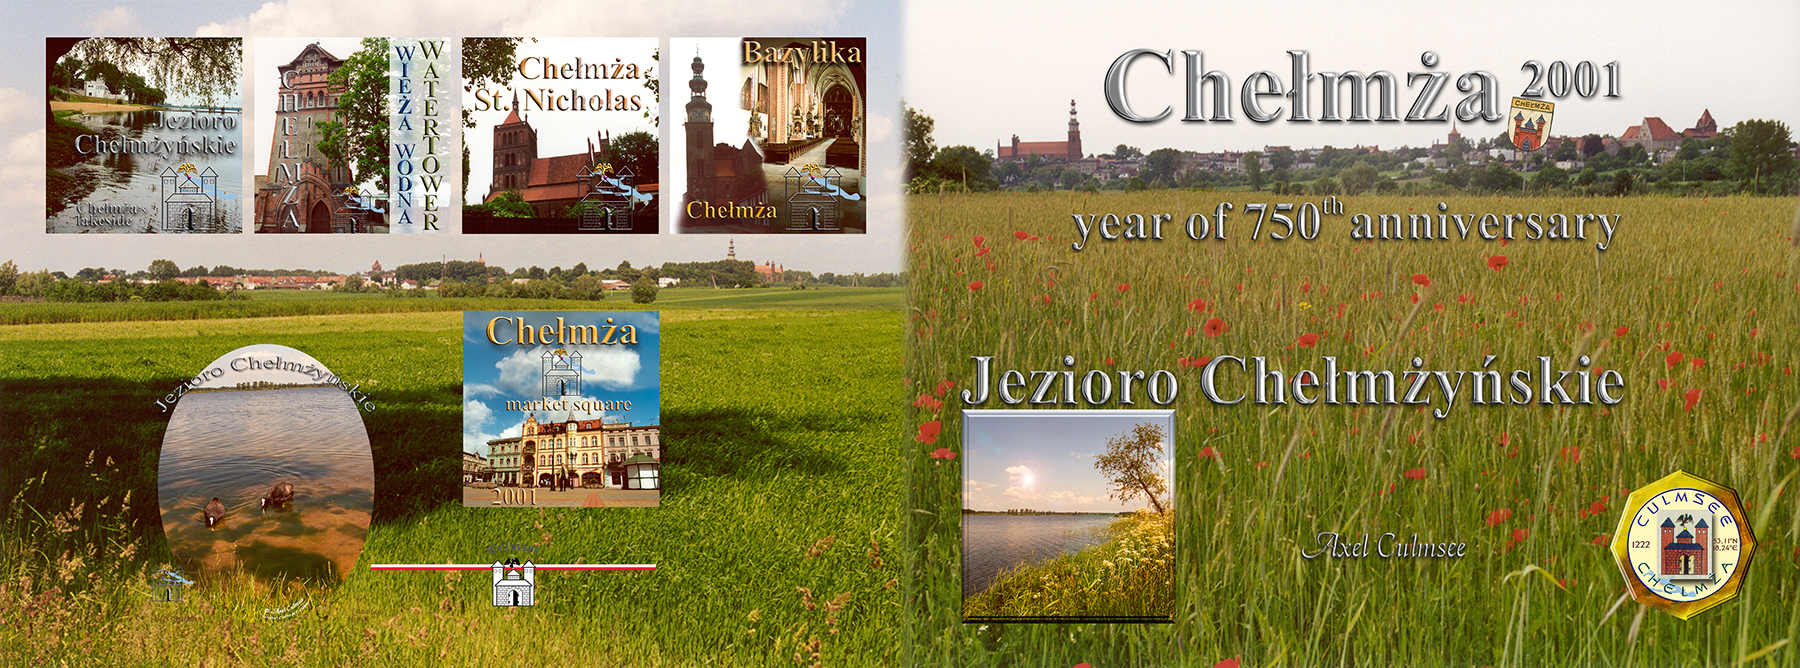 Amazon kdp Chelmza 2001 photographies incl. Cover by Axel Culmsee